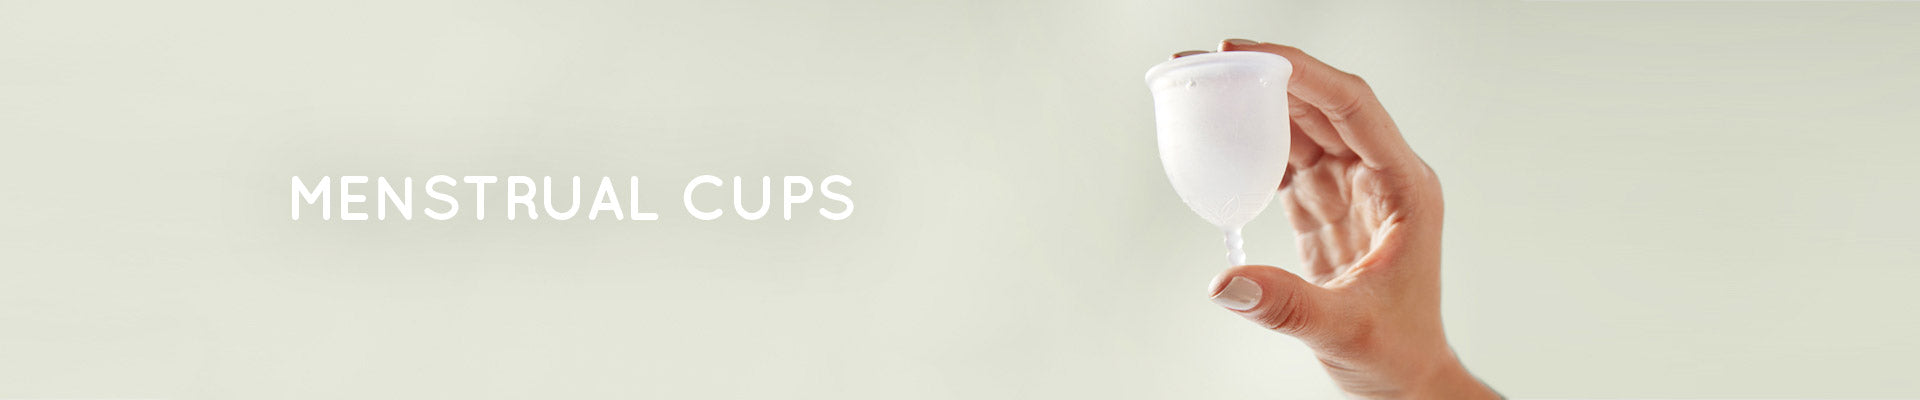 menstrual cups, period cup, mycup